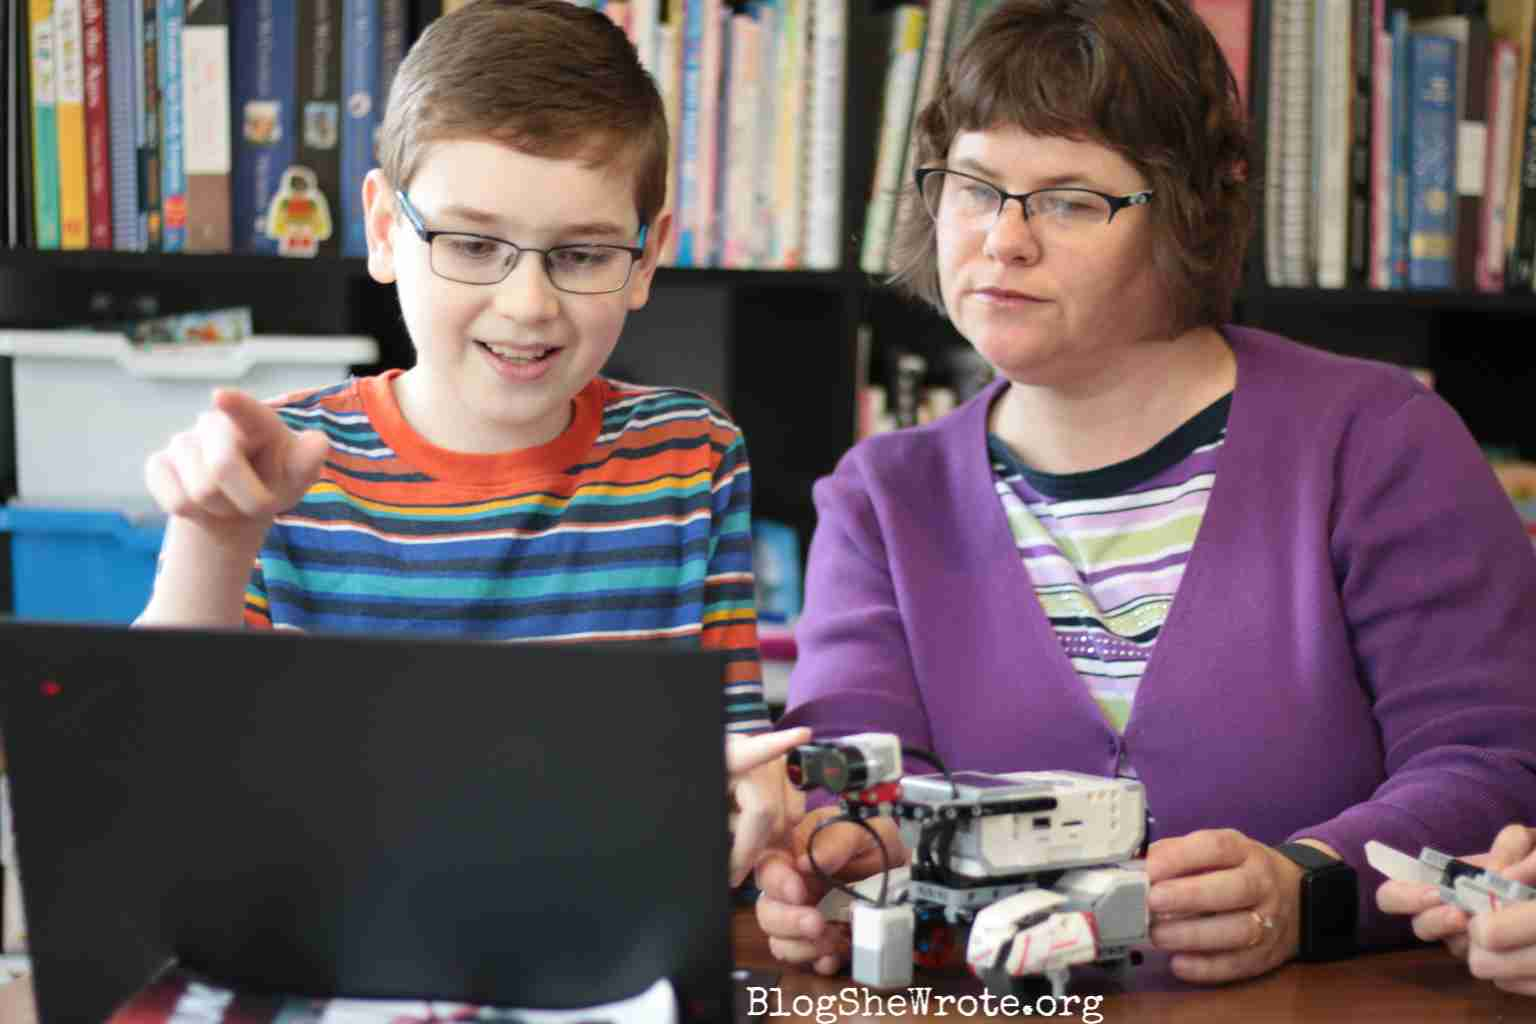 Homeschooling High School by Design- boy and his mom with a lego robot and computer